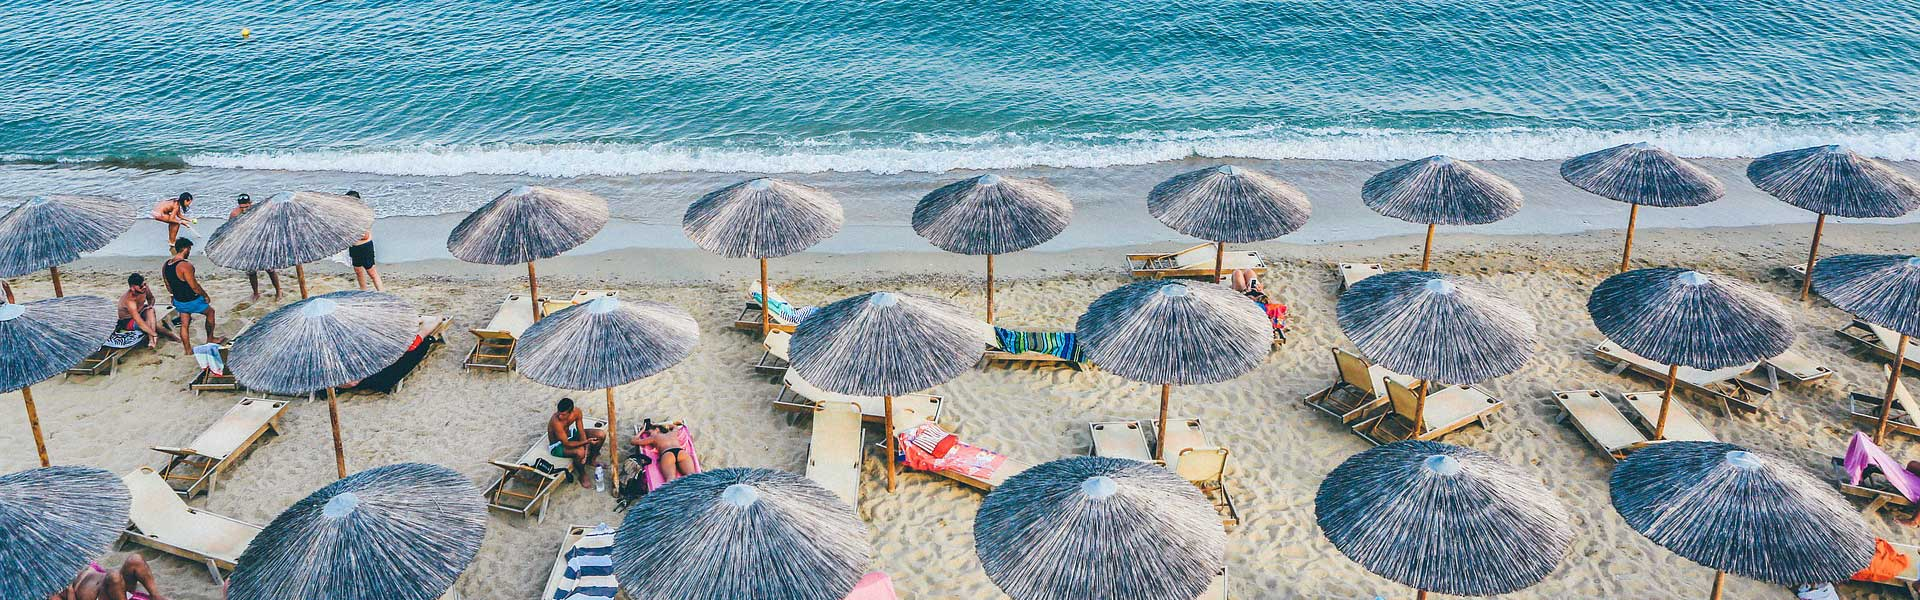 28 Holiday tips, tricks and hacks - Top banner depicting beach umbrellas